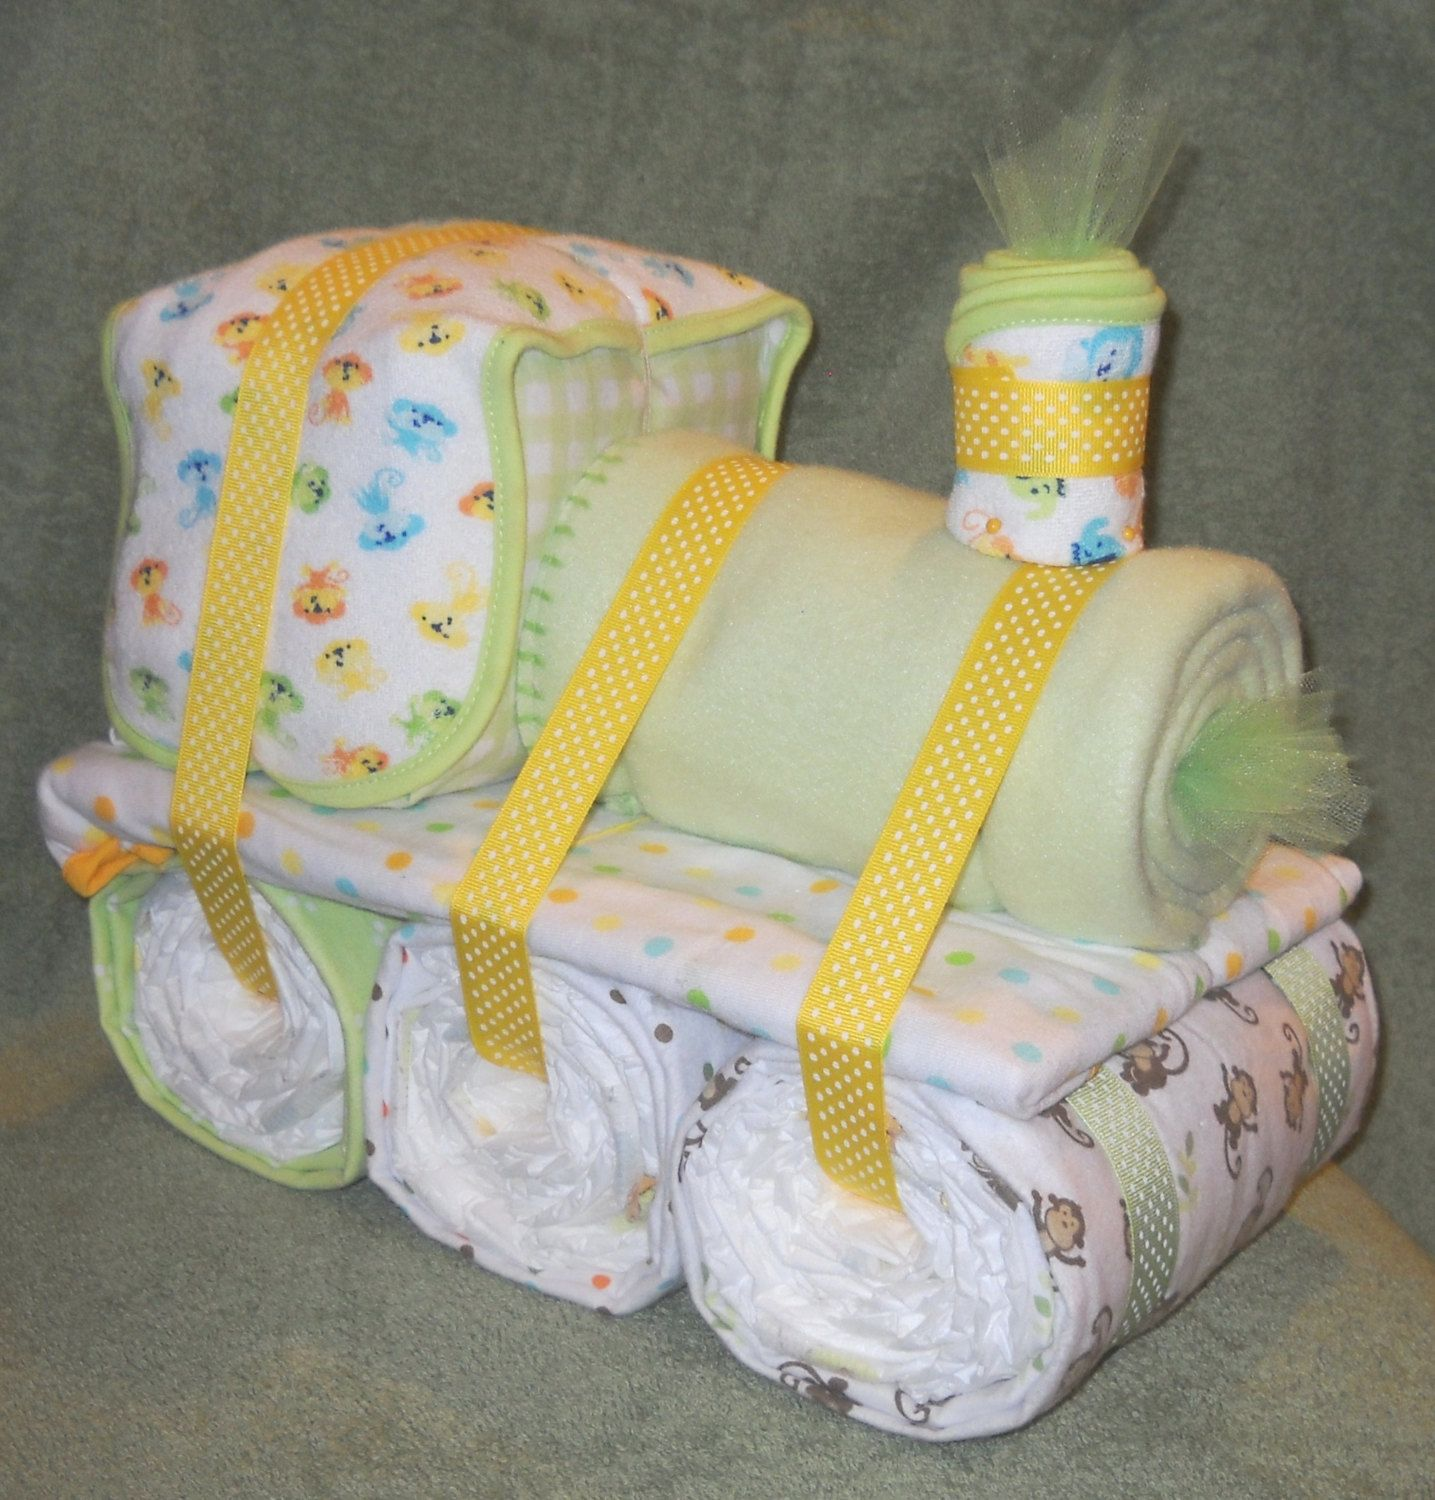 Choo Choo Train Diaper Cake For Baby Shower Centerpiece Or